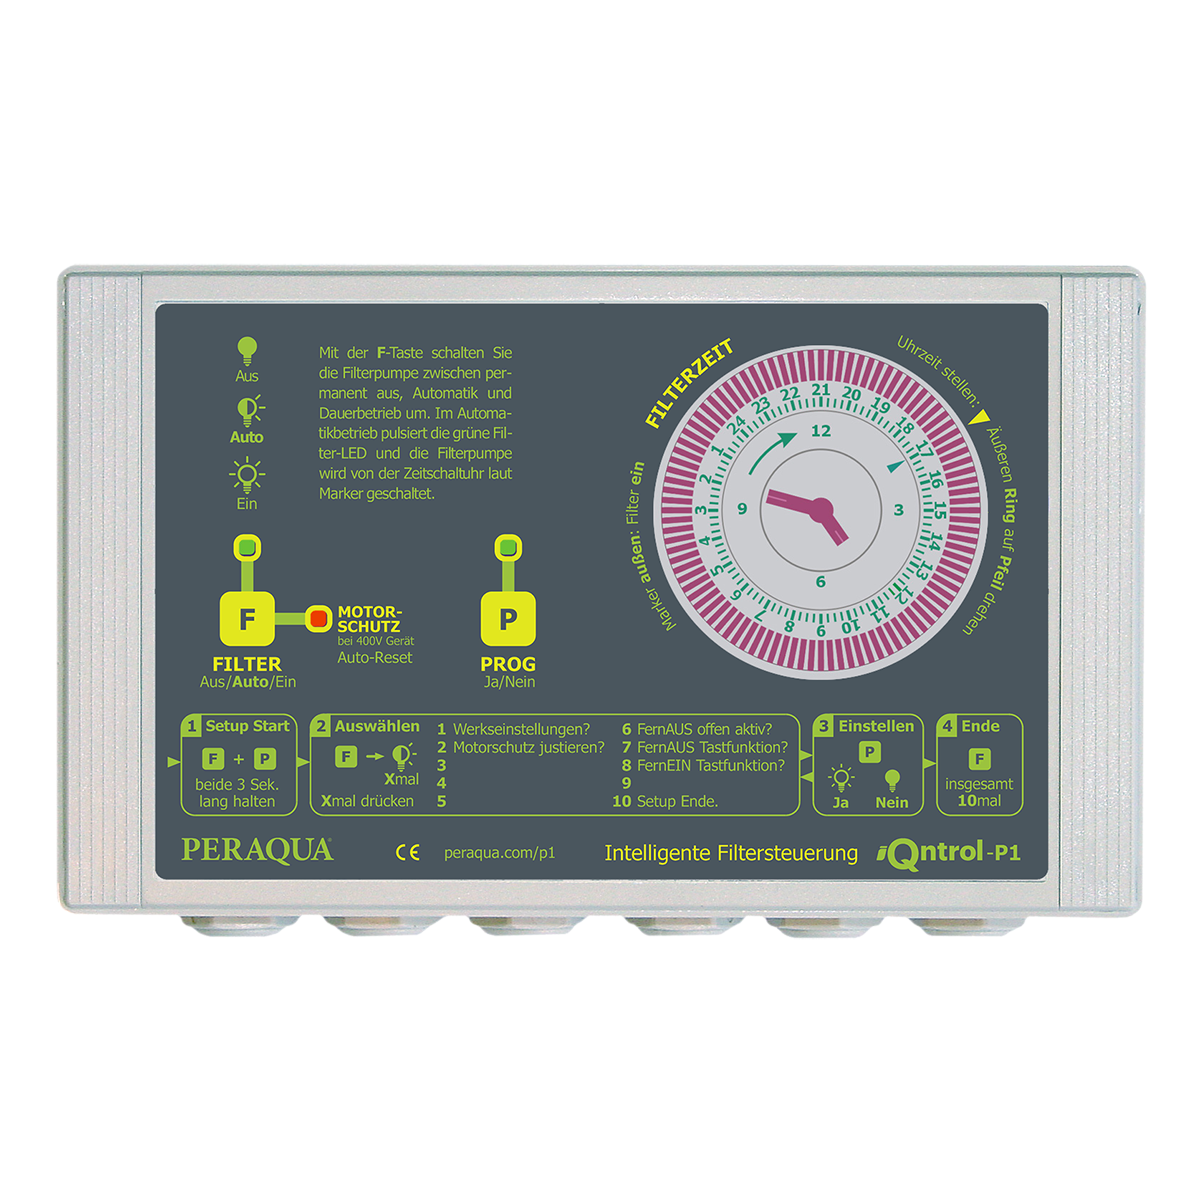 iQntrol-P1 pump control 230 without temperature modulator and without motor protection iQntrol-P1 pump control 230 without temperature modulator and without motor protection